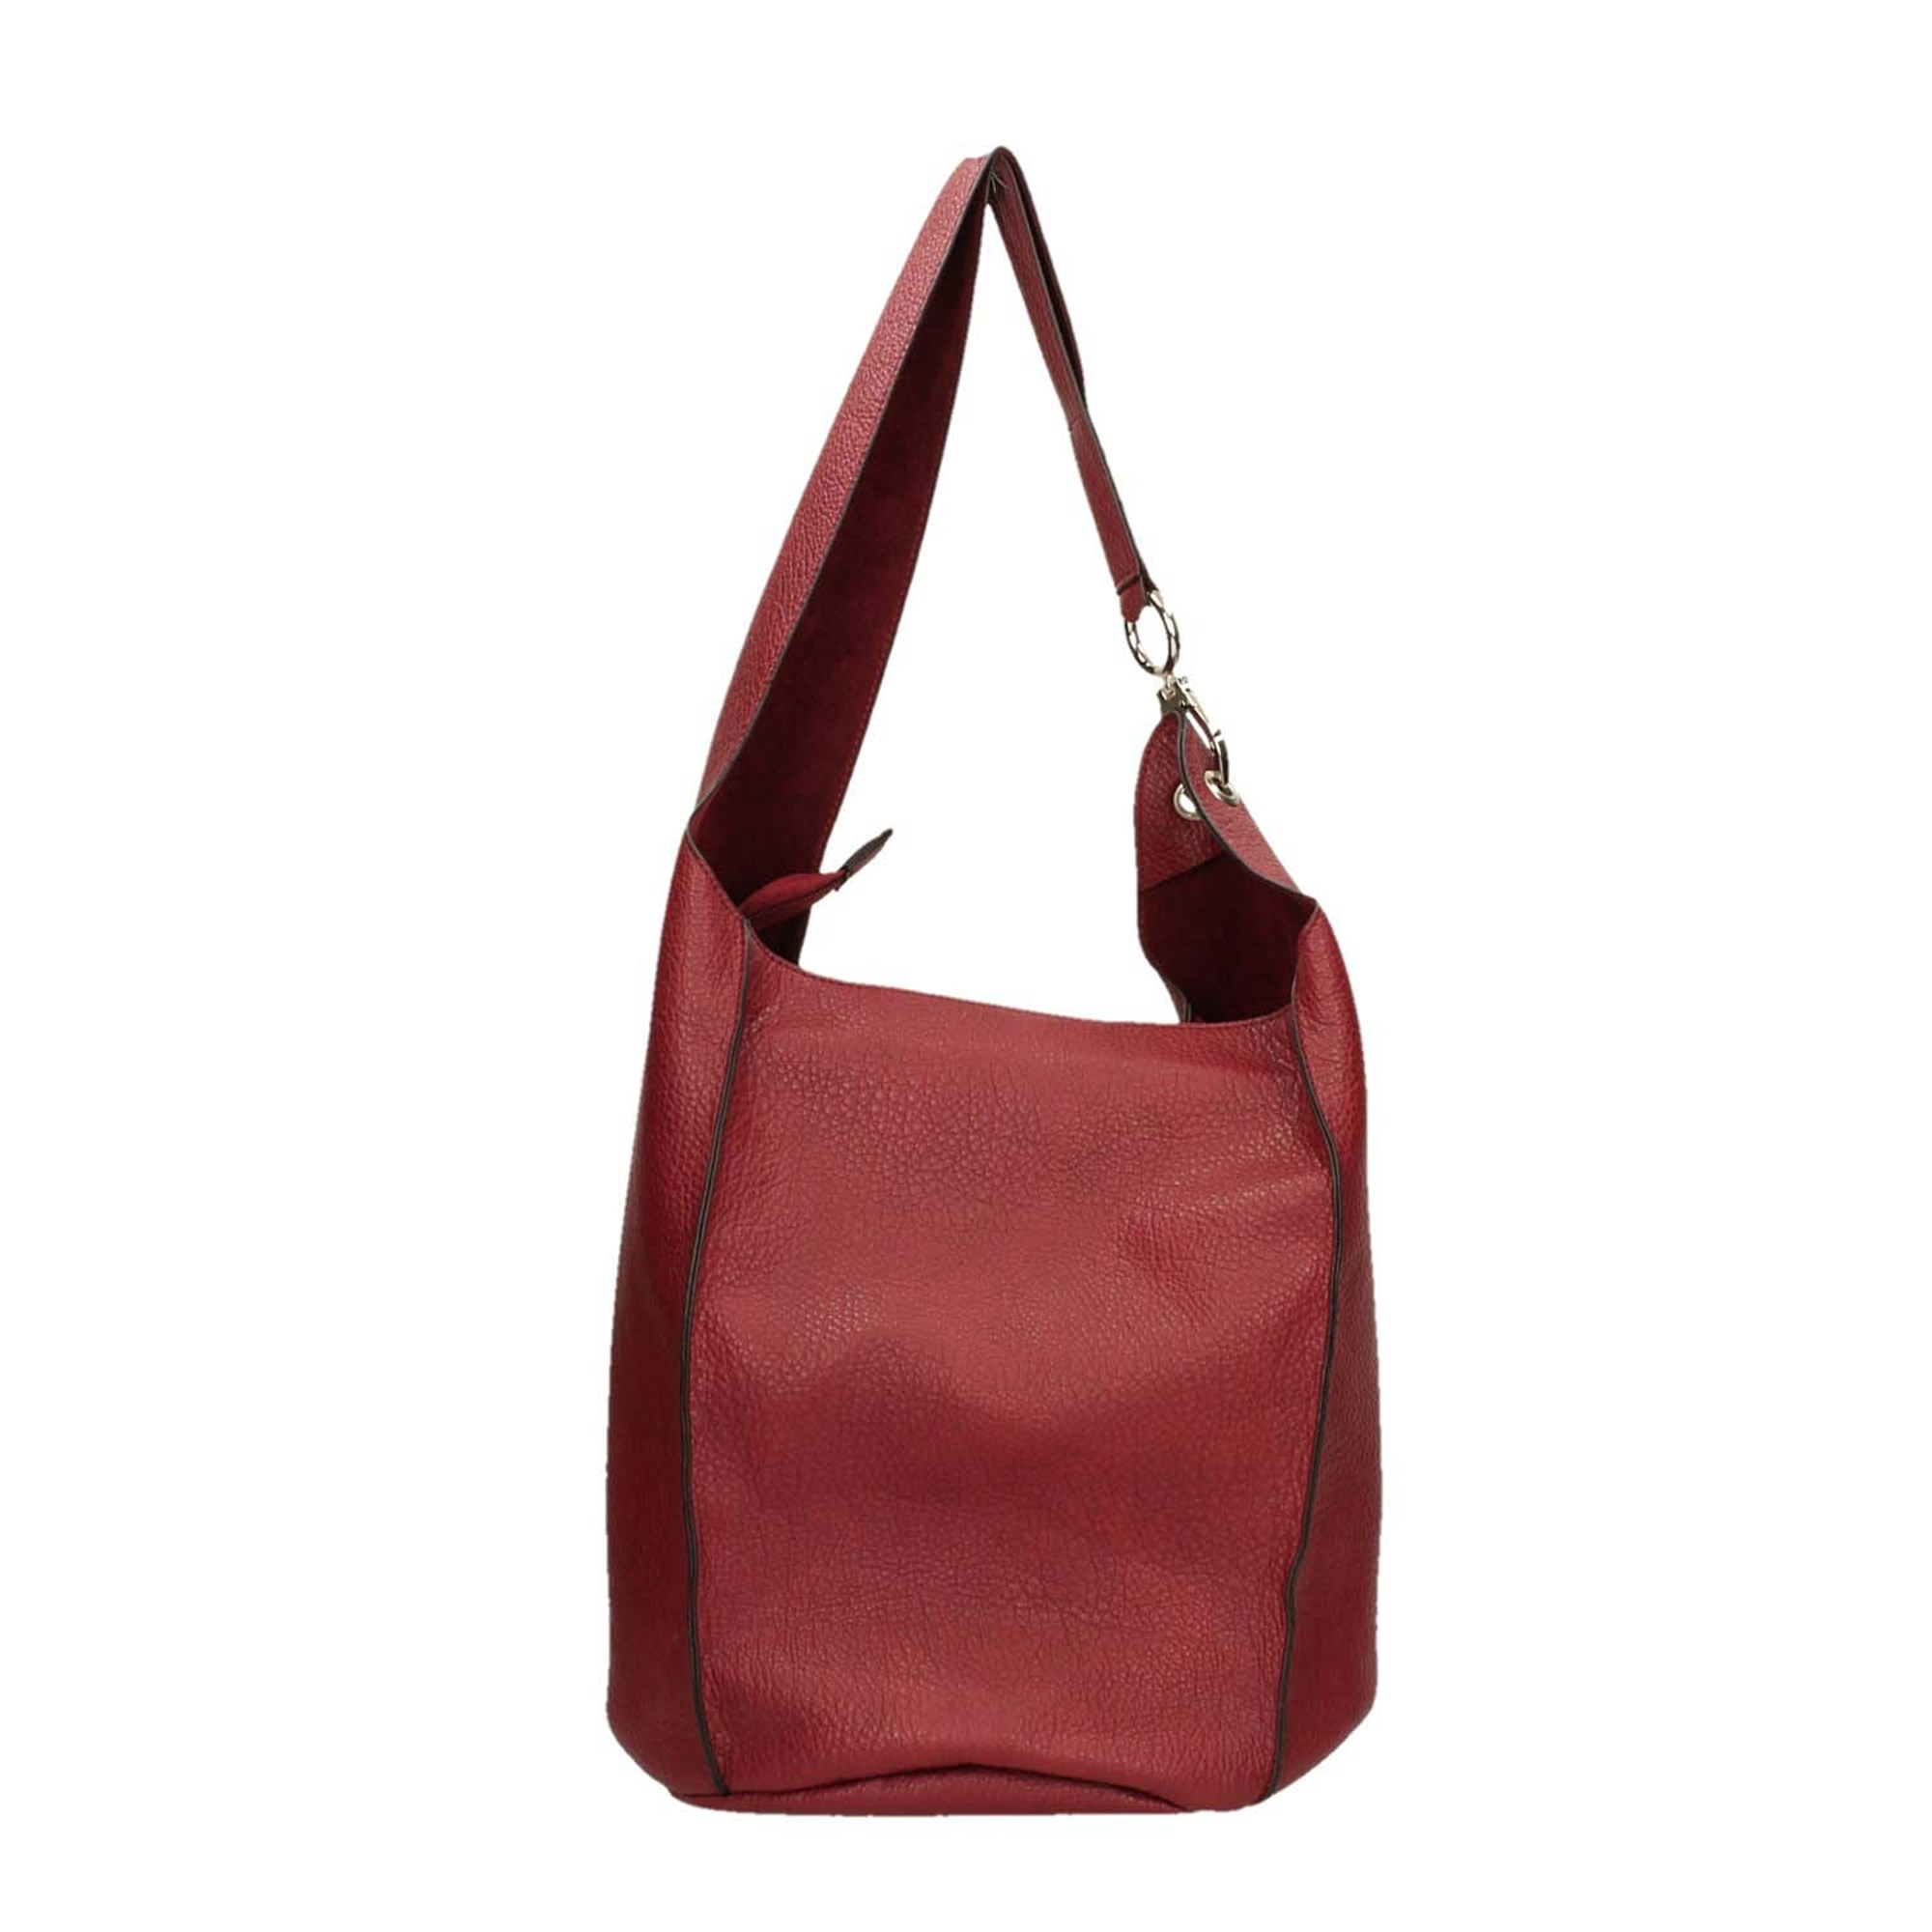 Tata Italia Accessories Woman Bags PCFW20315